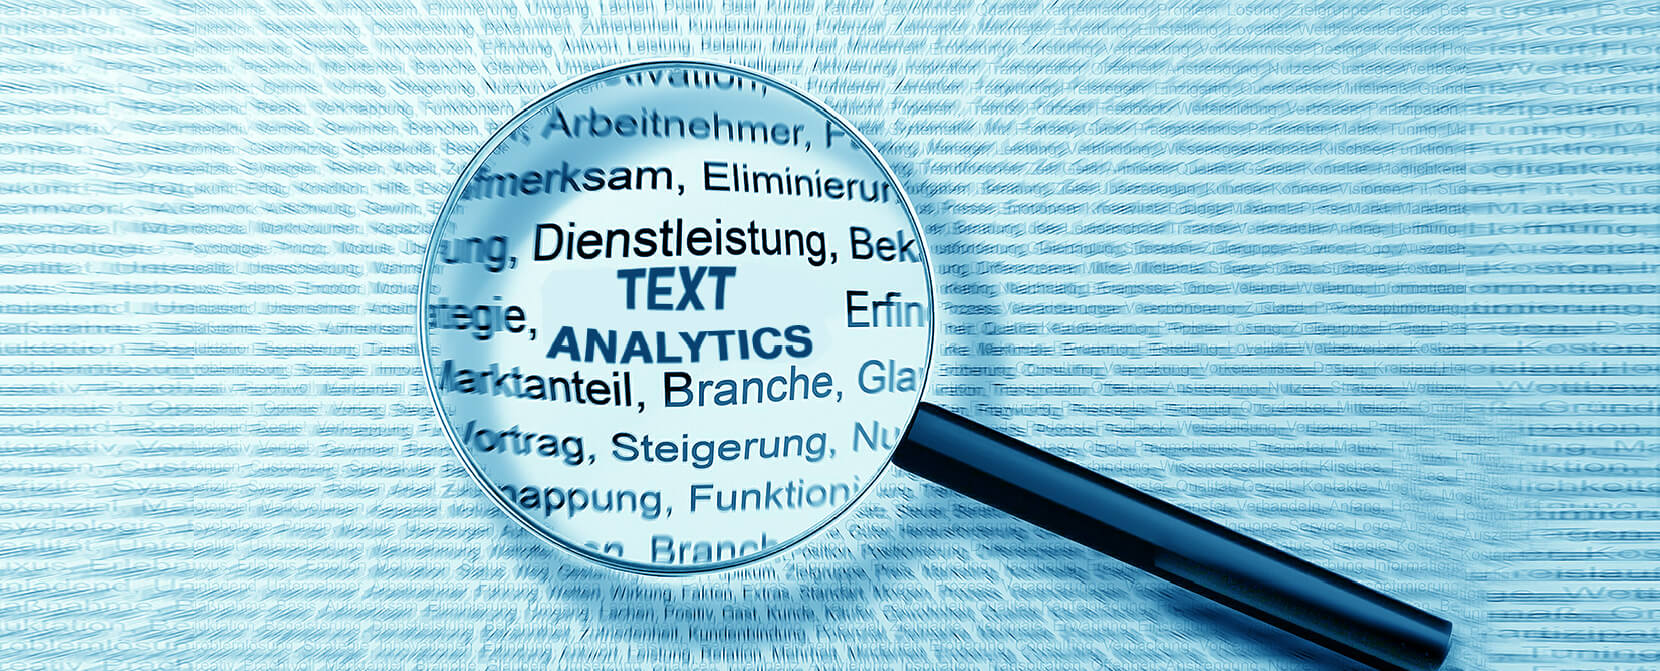 Everything you need to know about Text Analytics